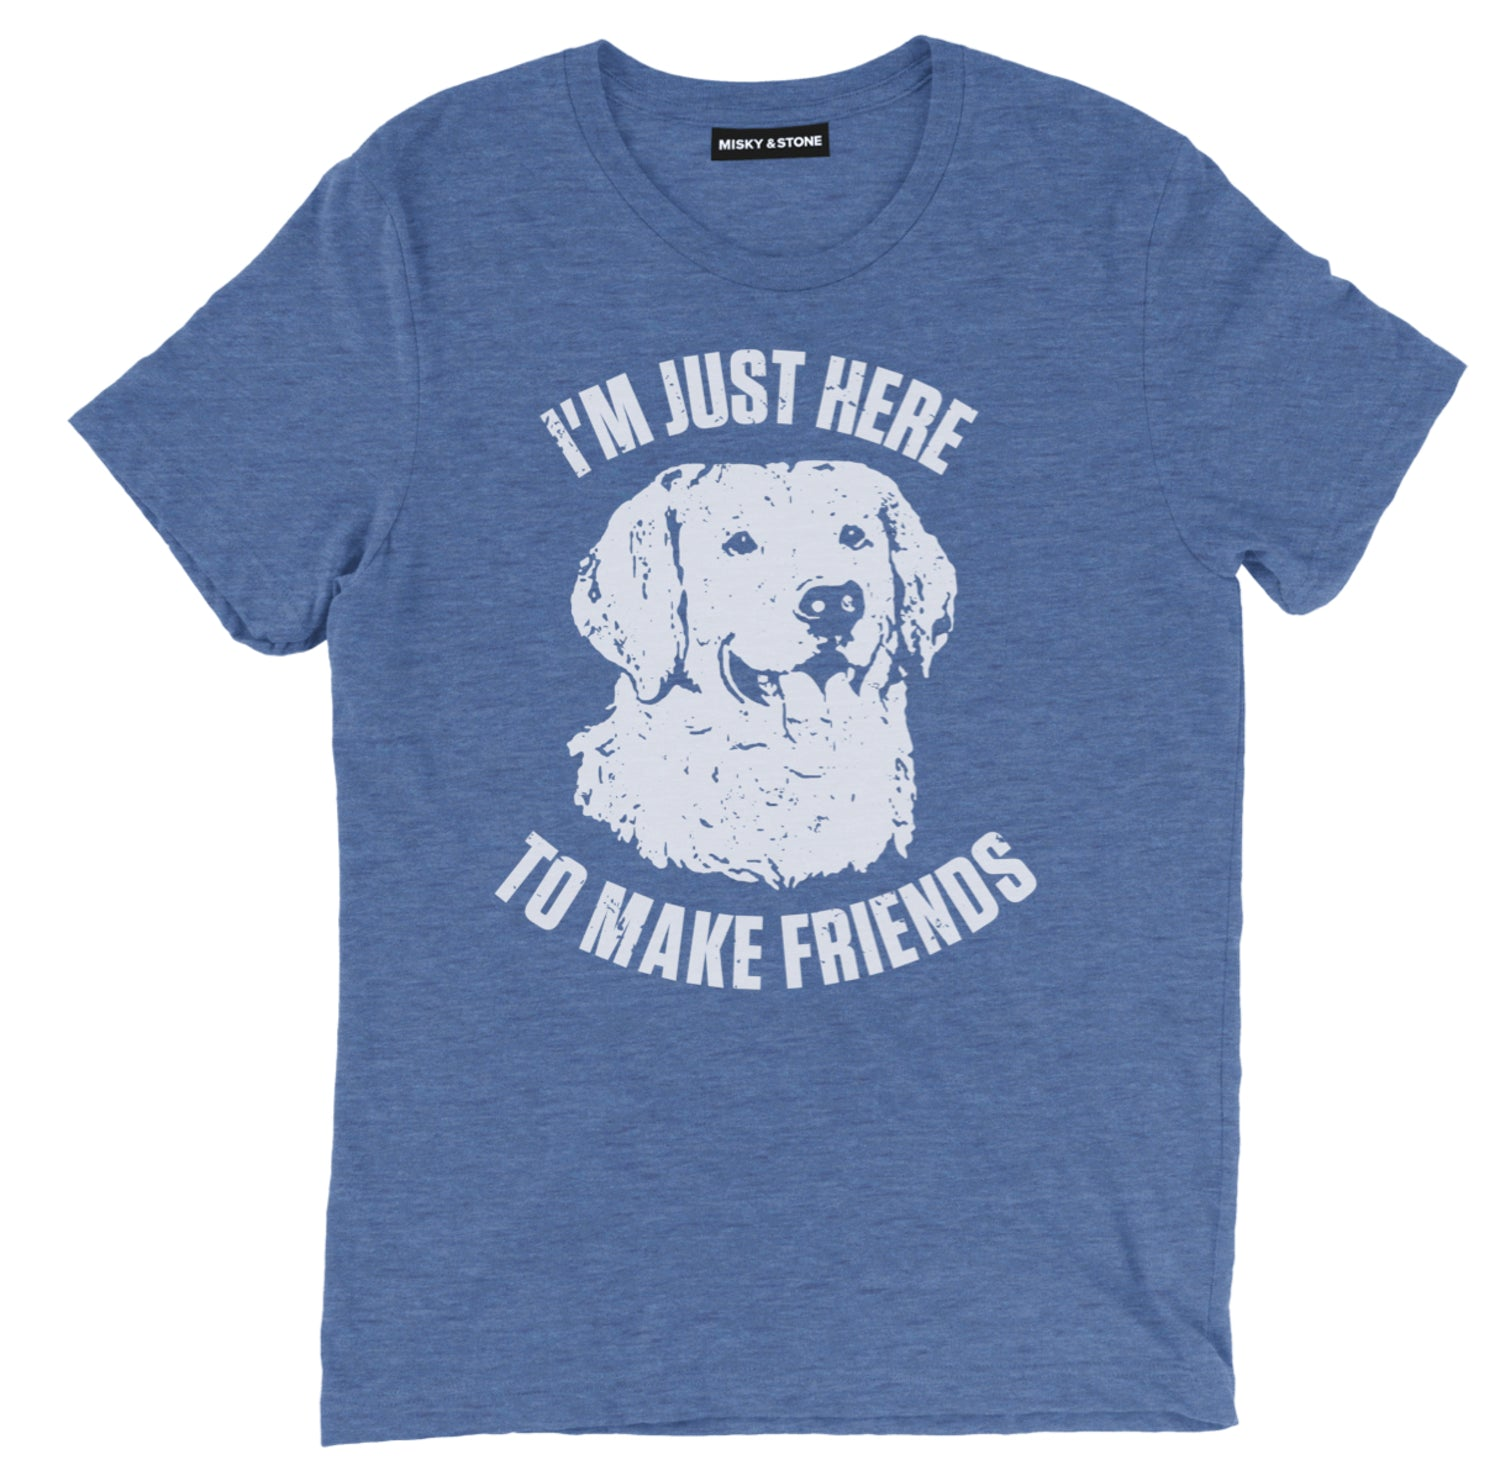 im just here to make friends t shirt, dog t shirts, dog shirts, dog lover t shirts, dog lover shirts, funny dog t shirt, dog tees